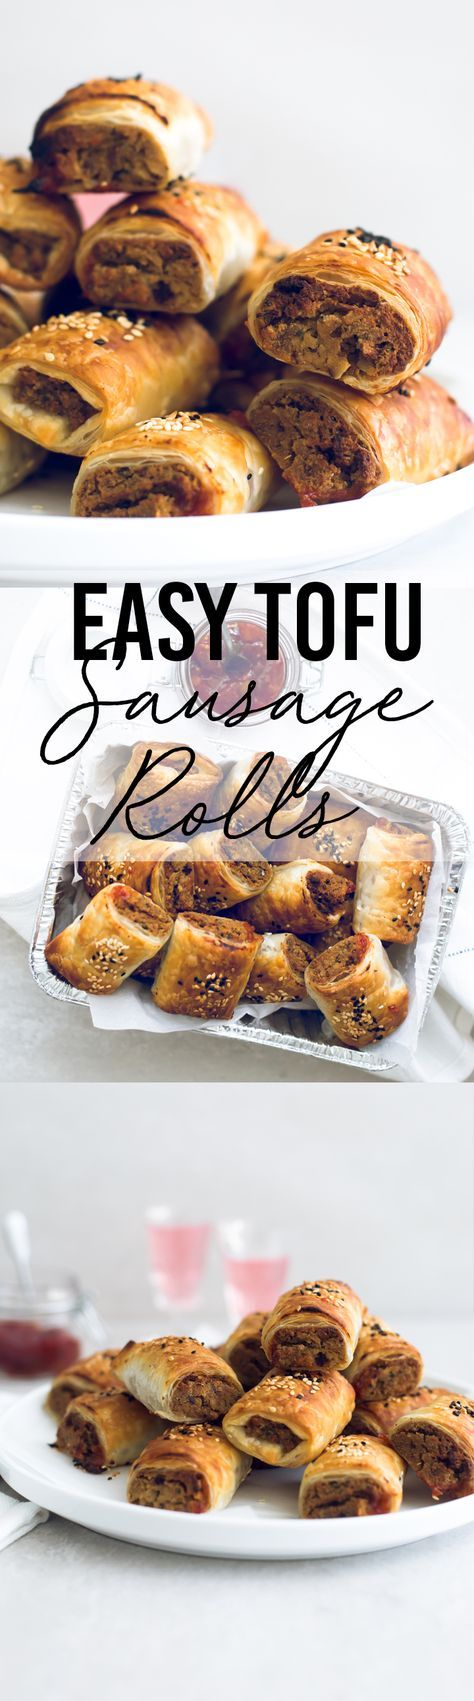 Delicious Vegan Tofu Sausage Rolls - Tofu and Nut Sausage Mince encased in golden and flaky Puff Pastry, served with Tomato Sauce. Perfect for parties and picnics. #vegan #tofu #sausagerolls #vegansausagerolls #simple #delicious #puffpastry #nuts